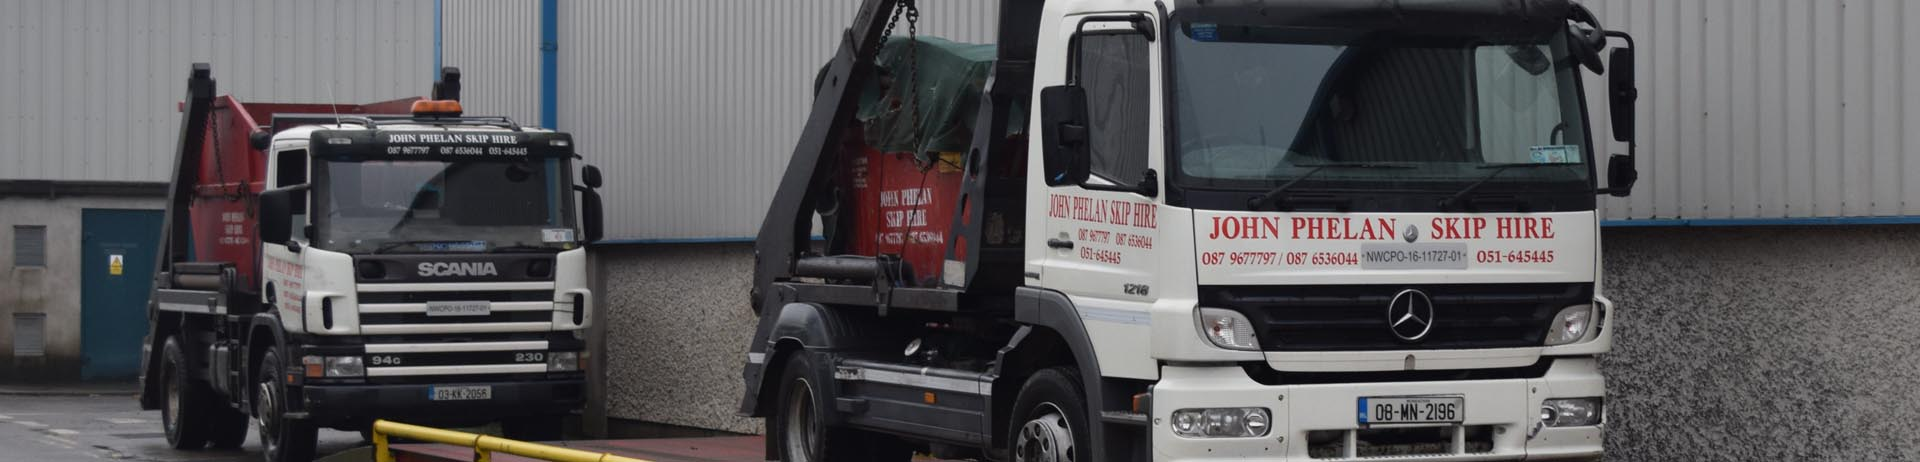 skip hire in carlow image